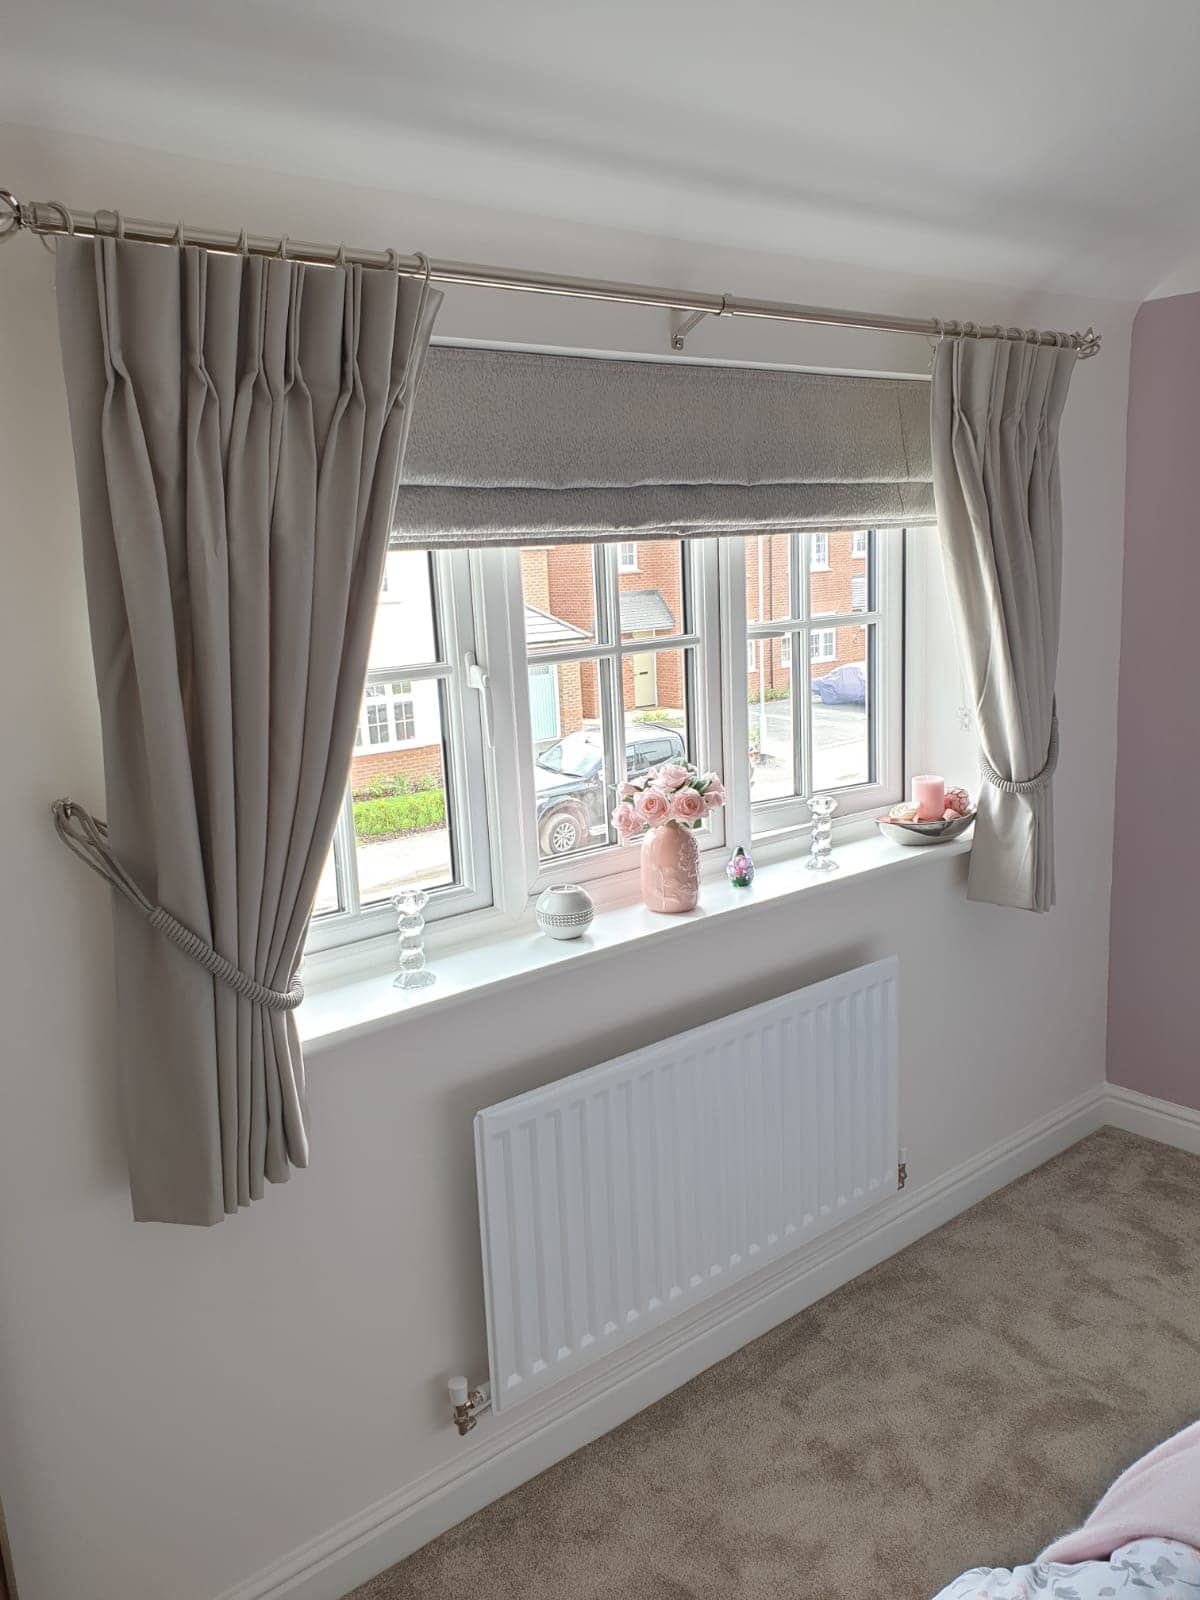 Made To Measure Blinds Shutters Awnings Northampton Coventry Leicester Fraser James Blinds